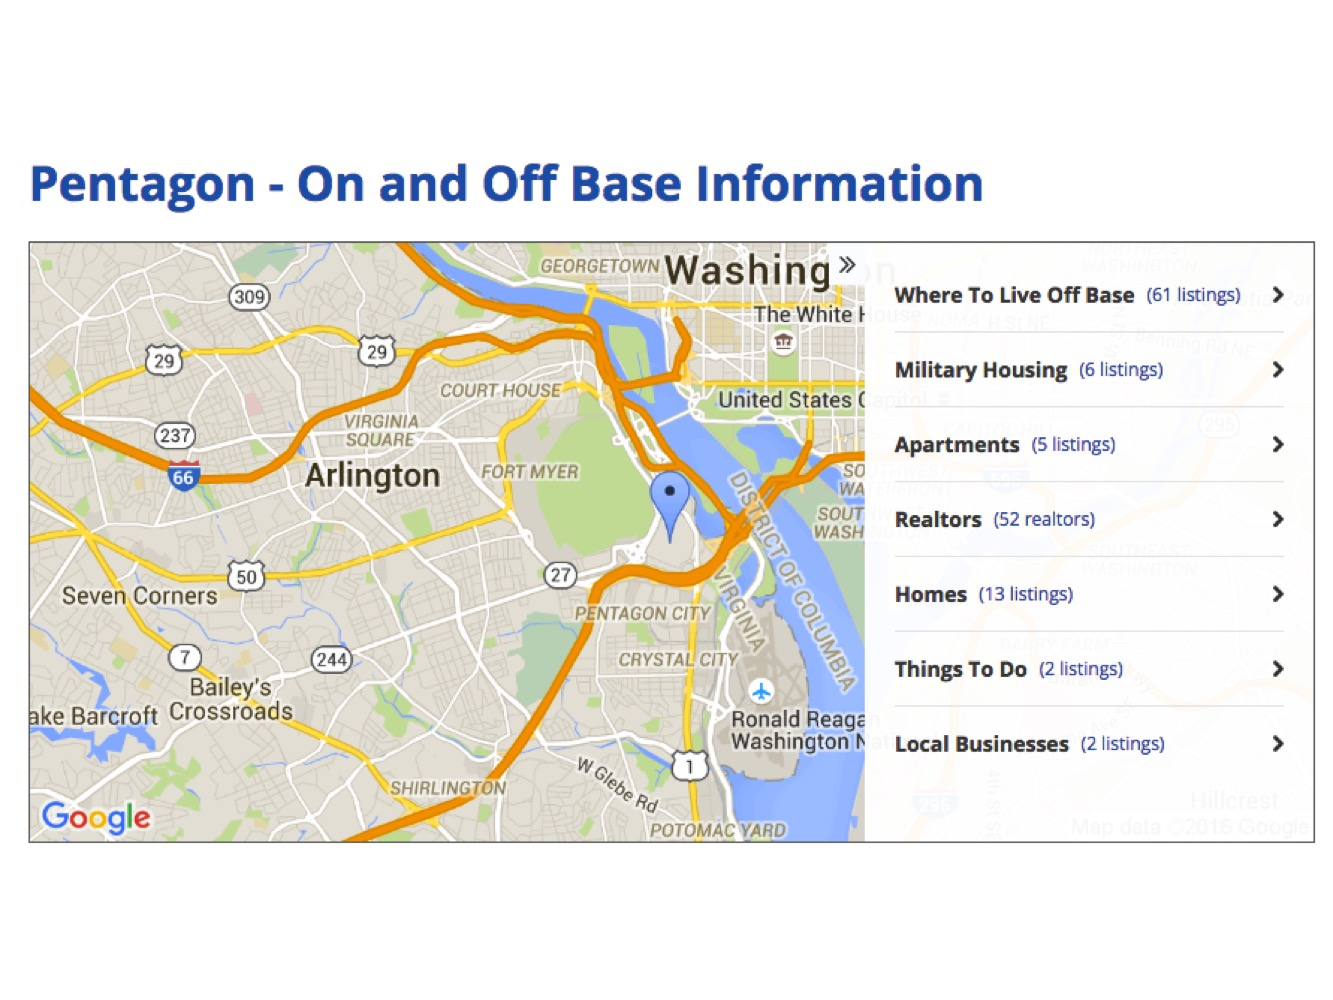 Pentagon On and Off Base information